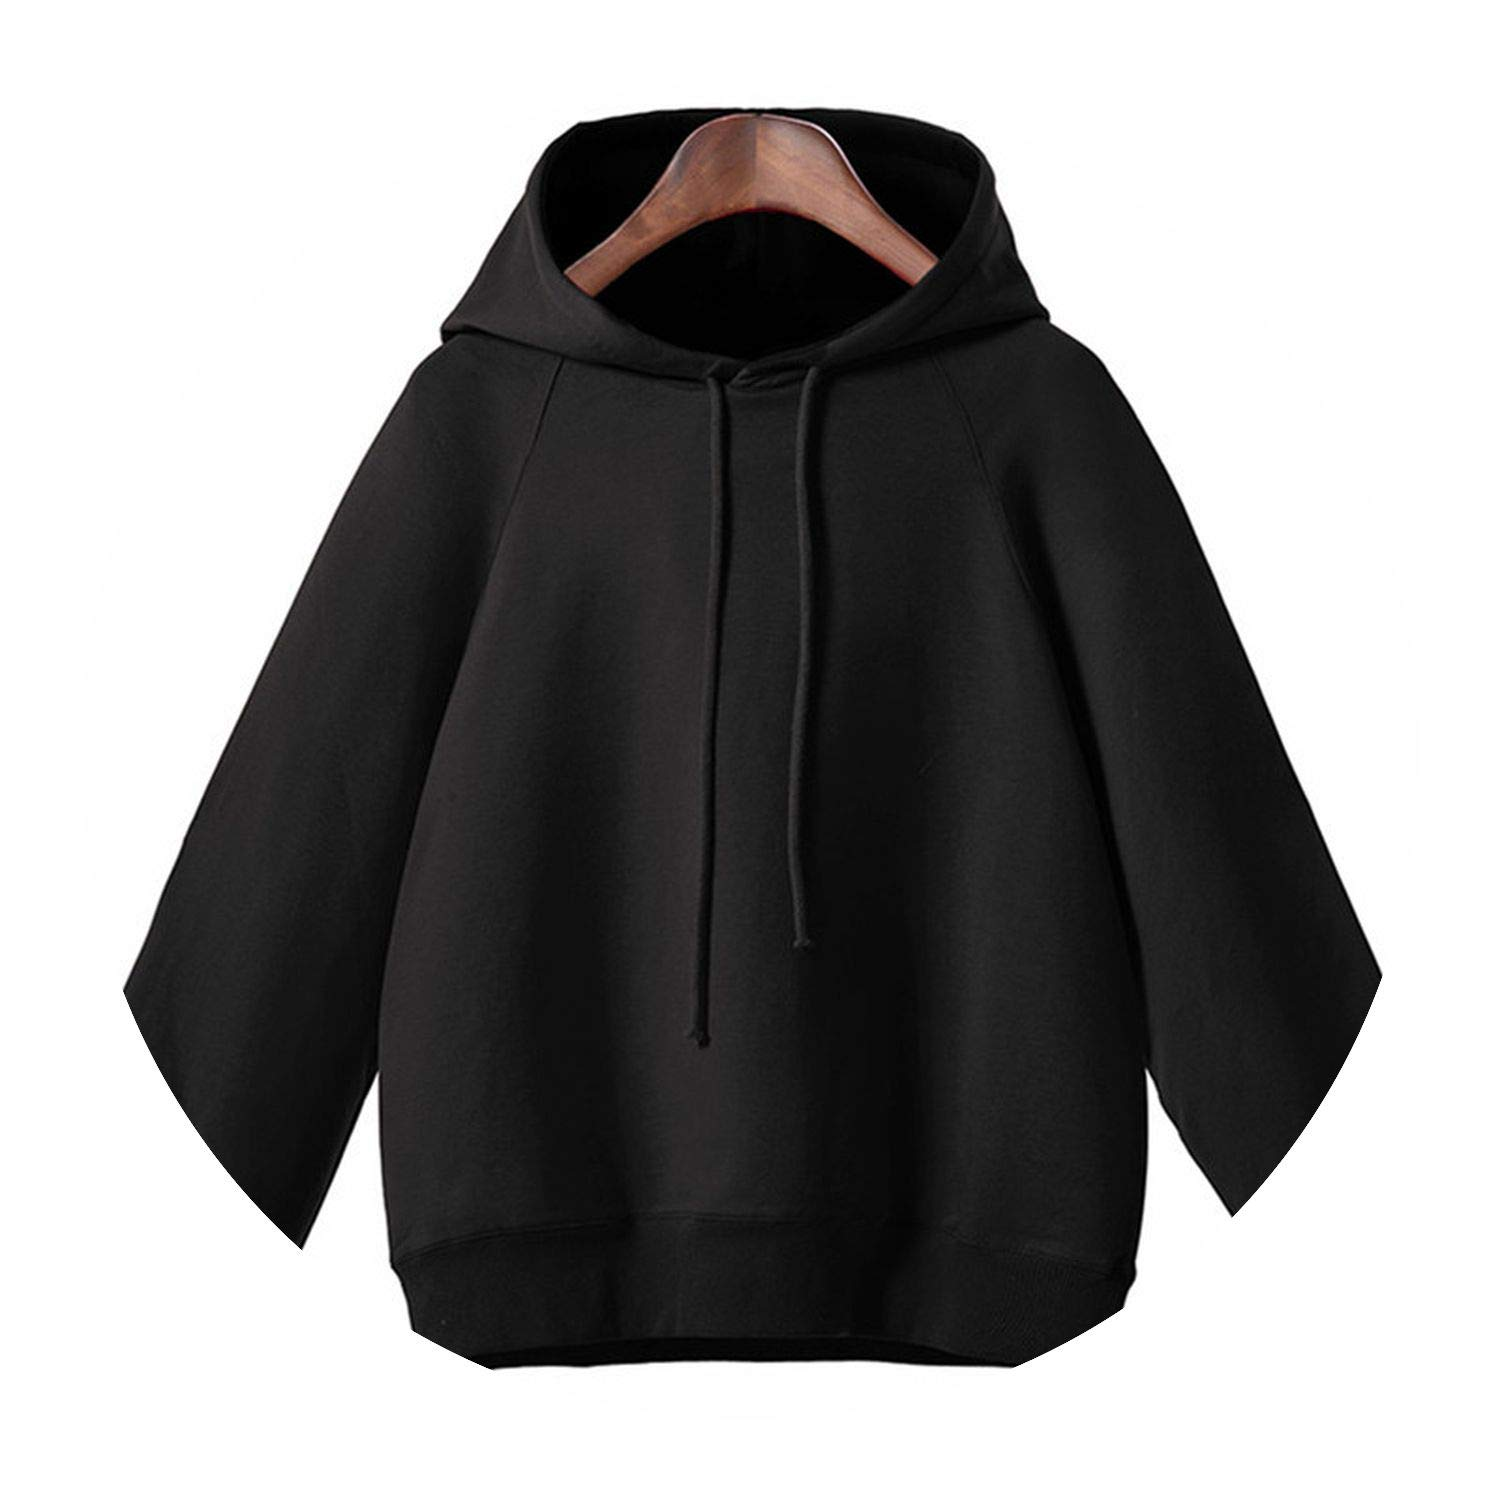 Long Lantern Sleeve Hoodies Solid Oversized Hooded Neck Pullovers Autumn W30